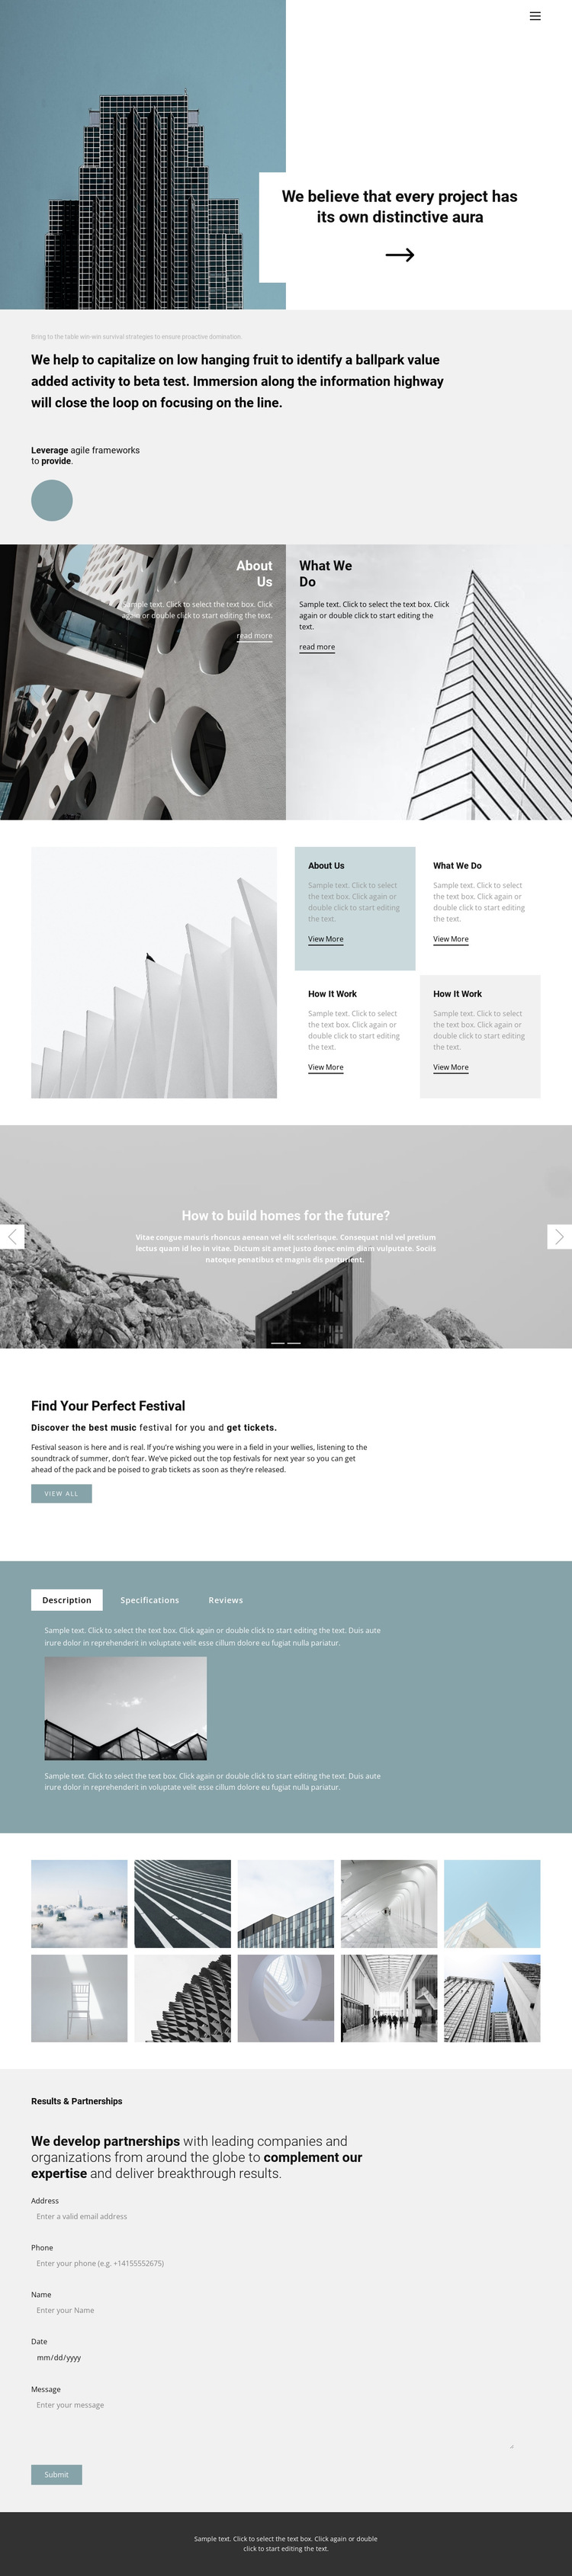 Choose an office for yourself HTML5 Template